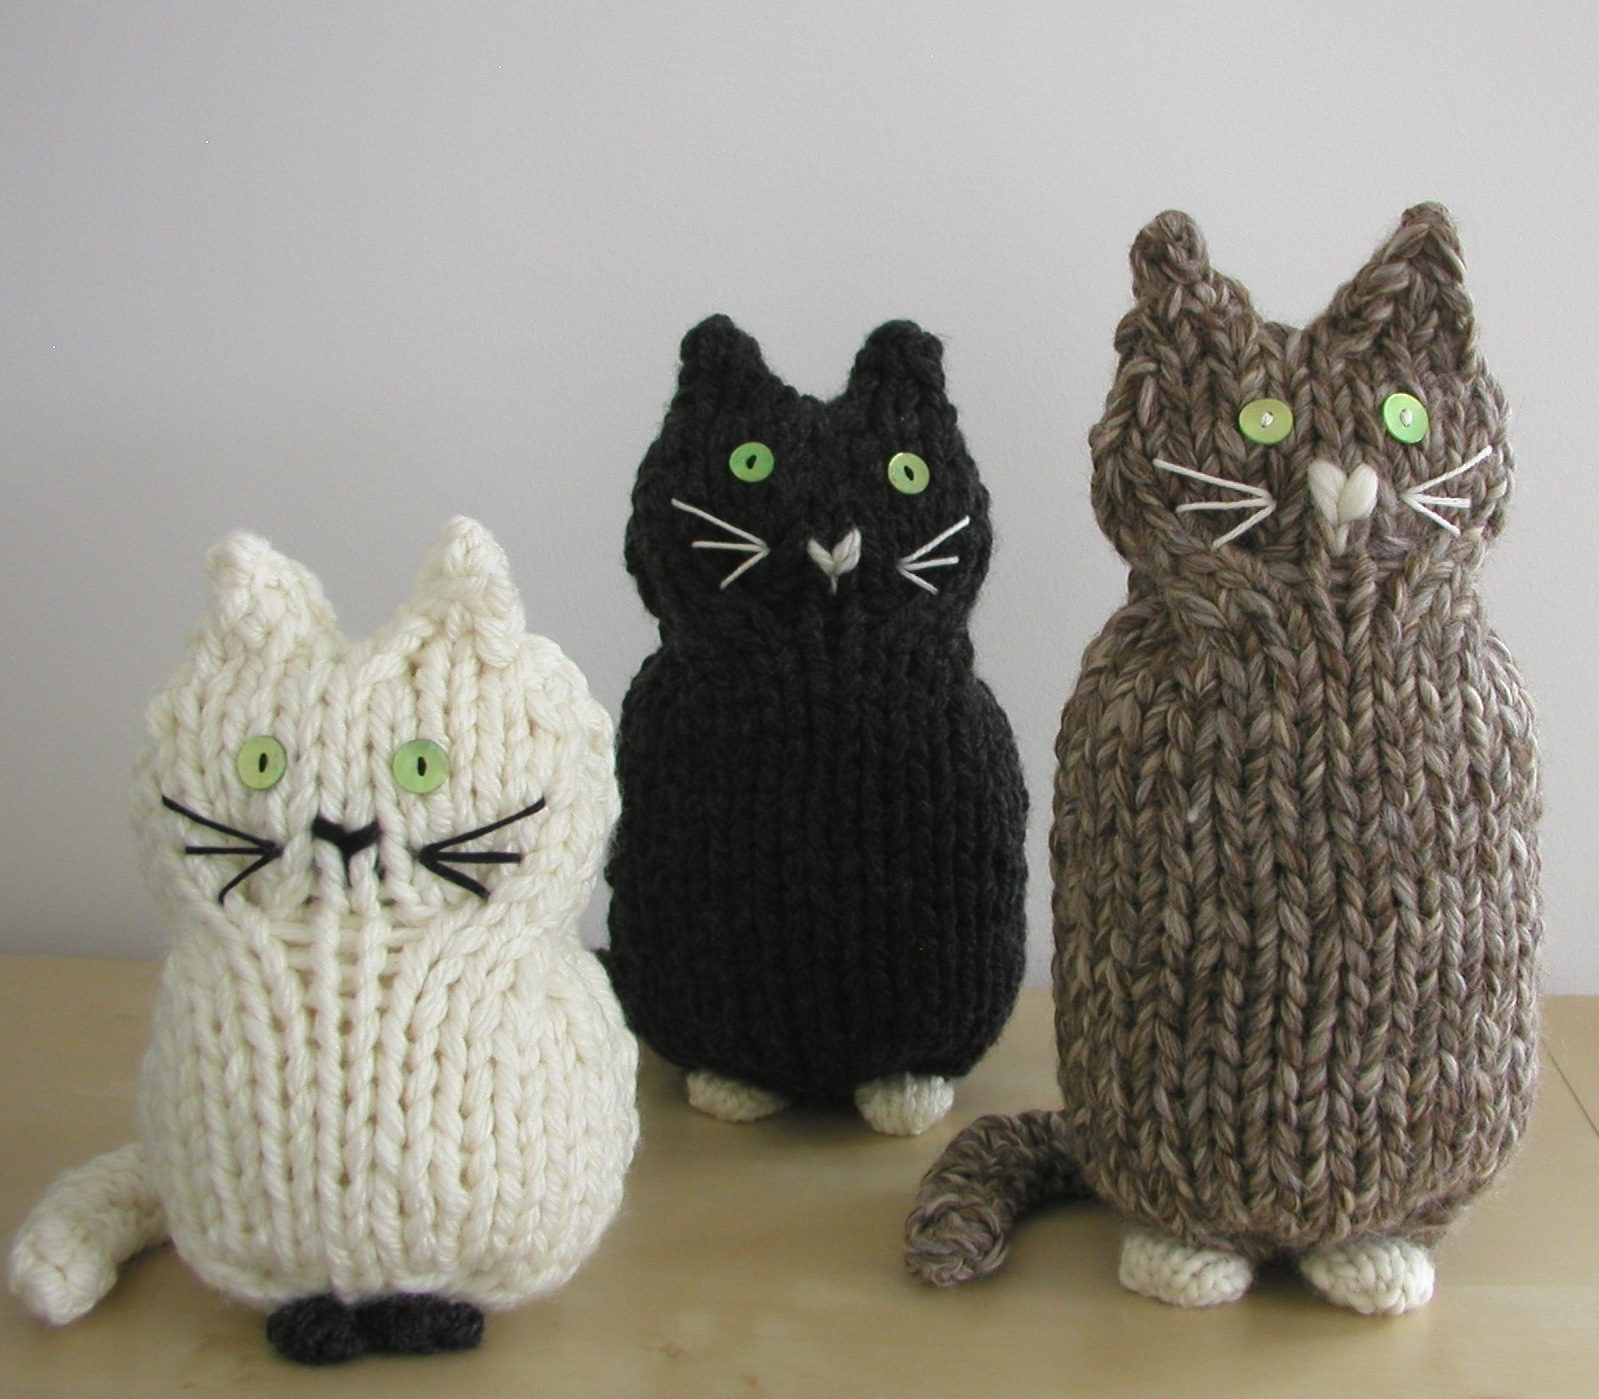 Purl Bee Knitting Patterns : Hand Knitted Things: Cats in Simply Knitting Magazine